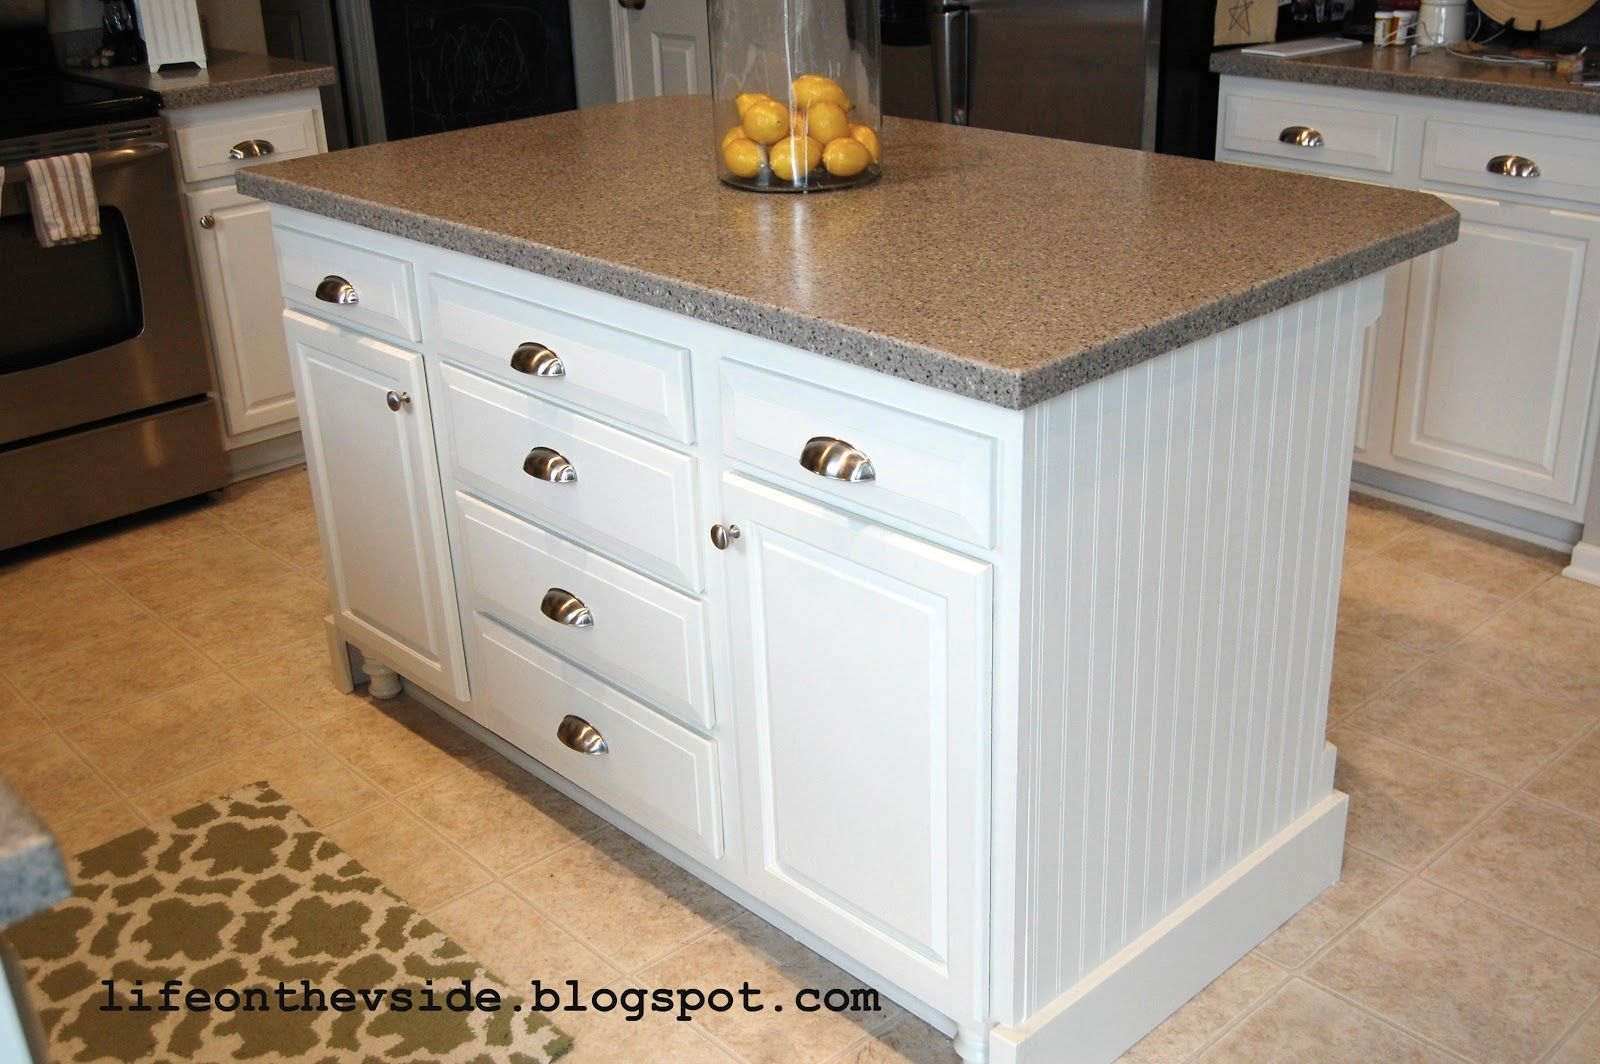 How to paint oak kitchen cabinets - to last! USE Sherwin Williams ...